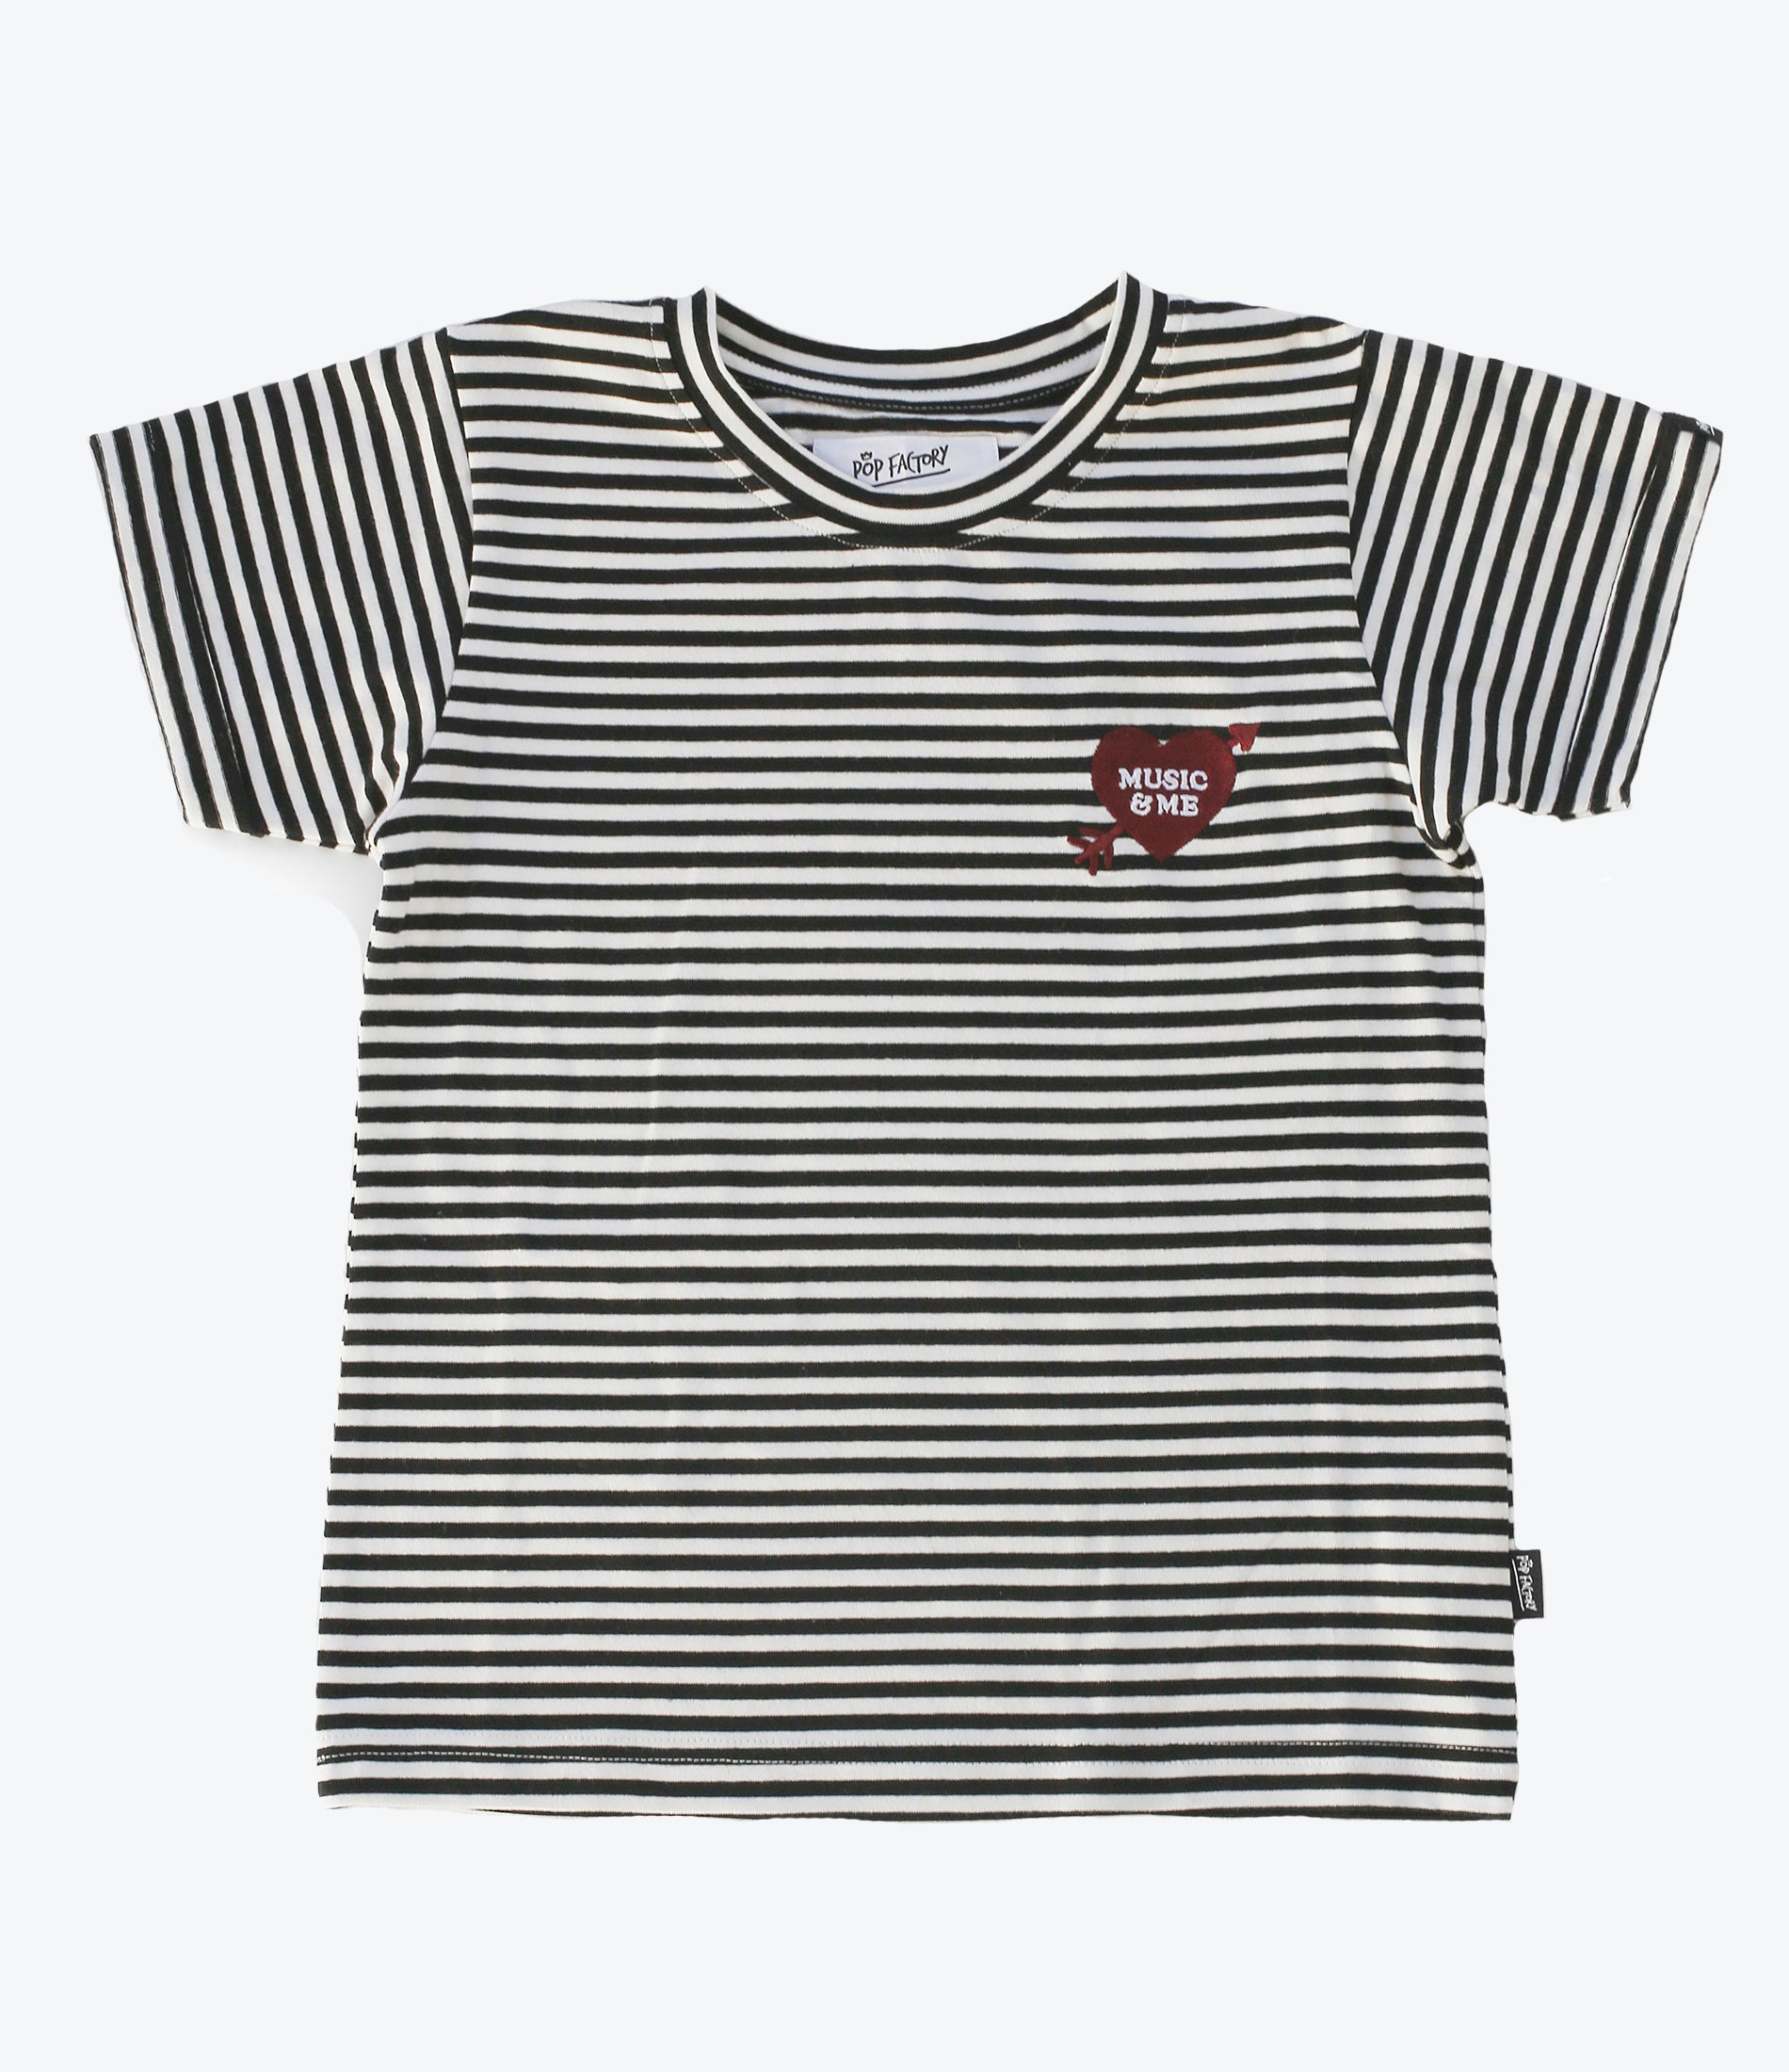 Music and Me Tee by Pop Factory Shop, Girls clothing, Wardrobe staple, Striped with embroidered Heart, Summer Wardrobes. Auckland NZ. Shop at Made Mini Store